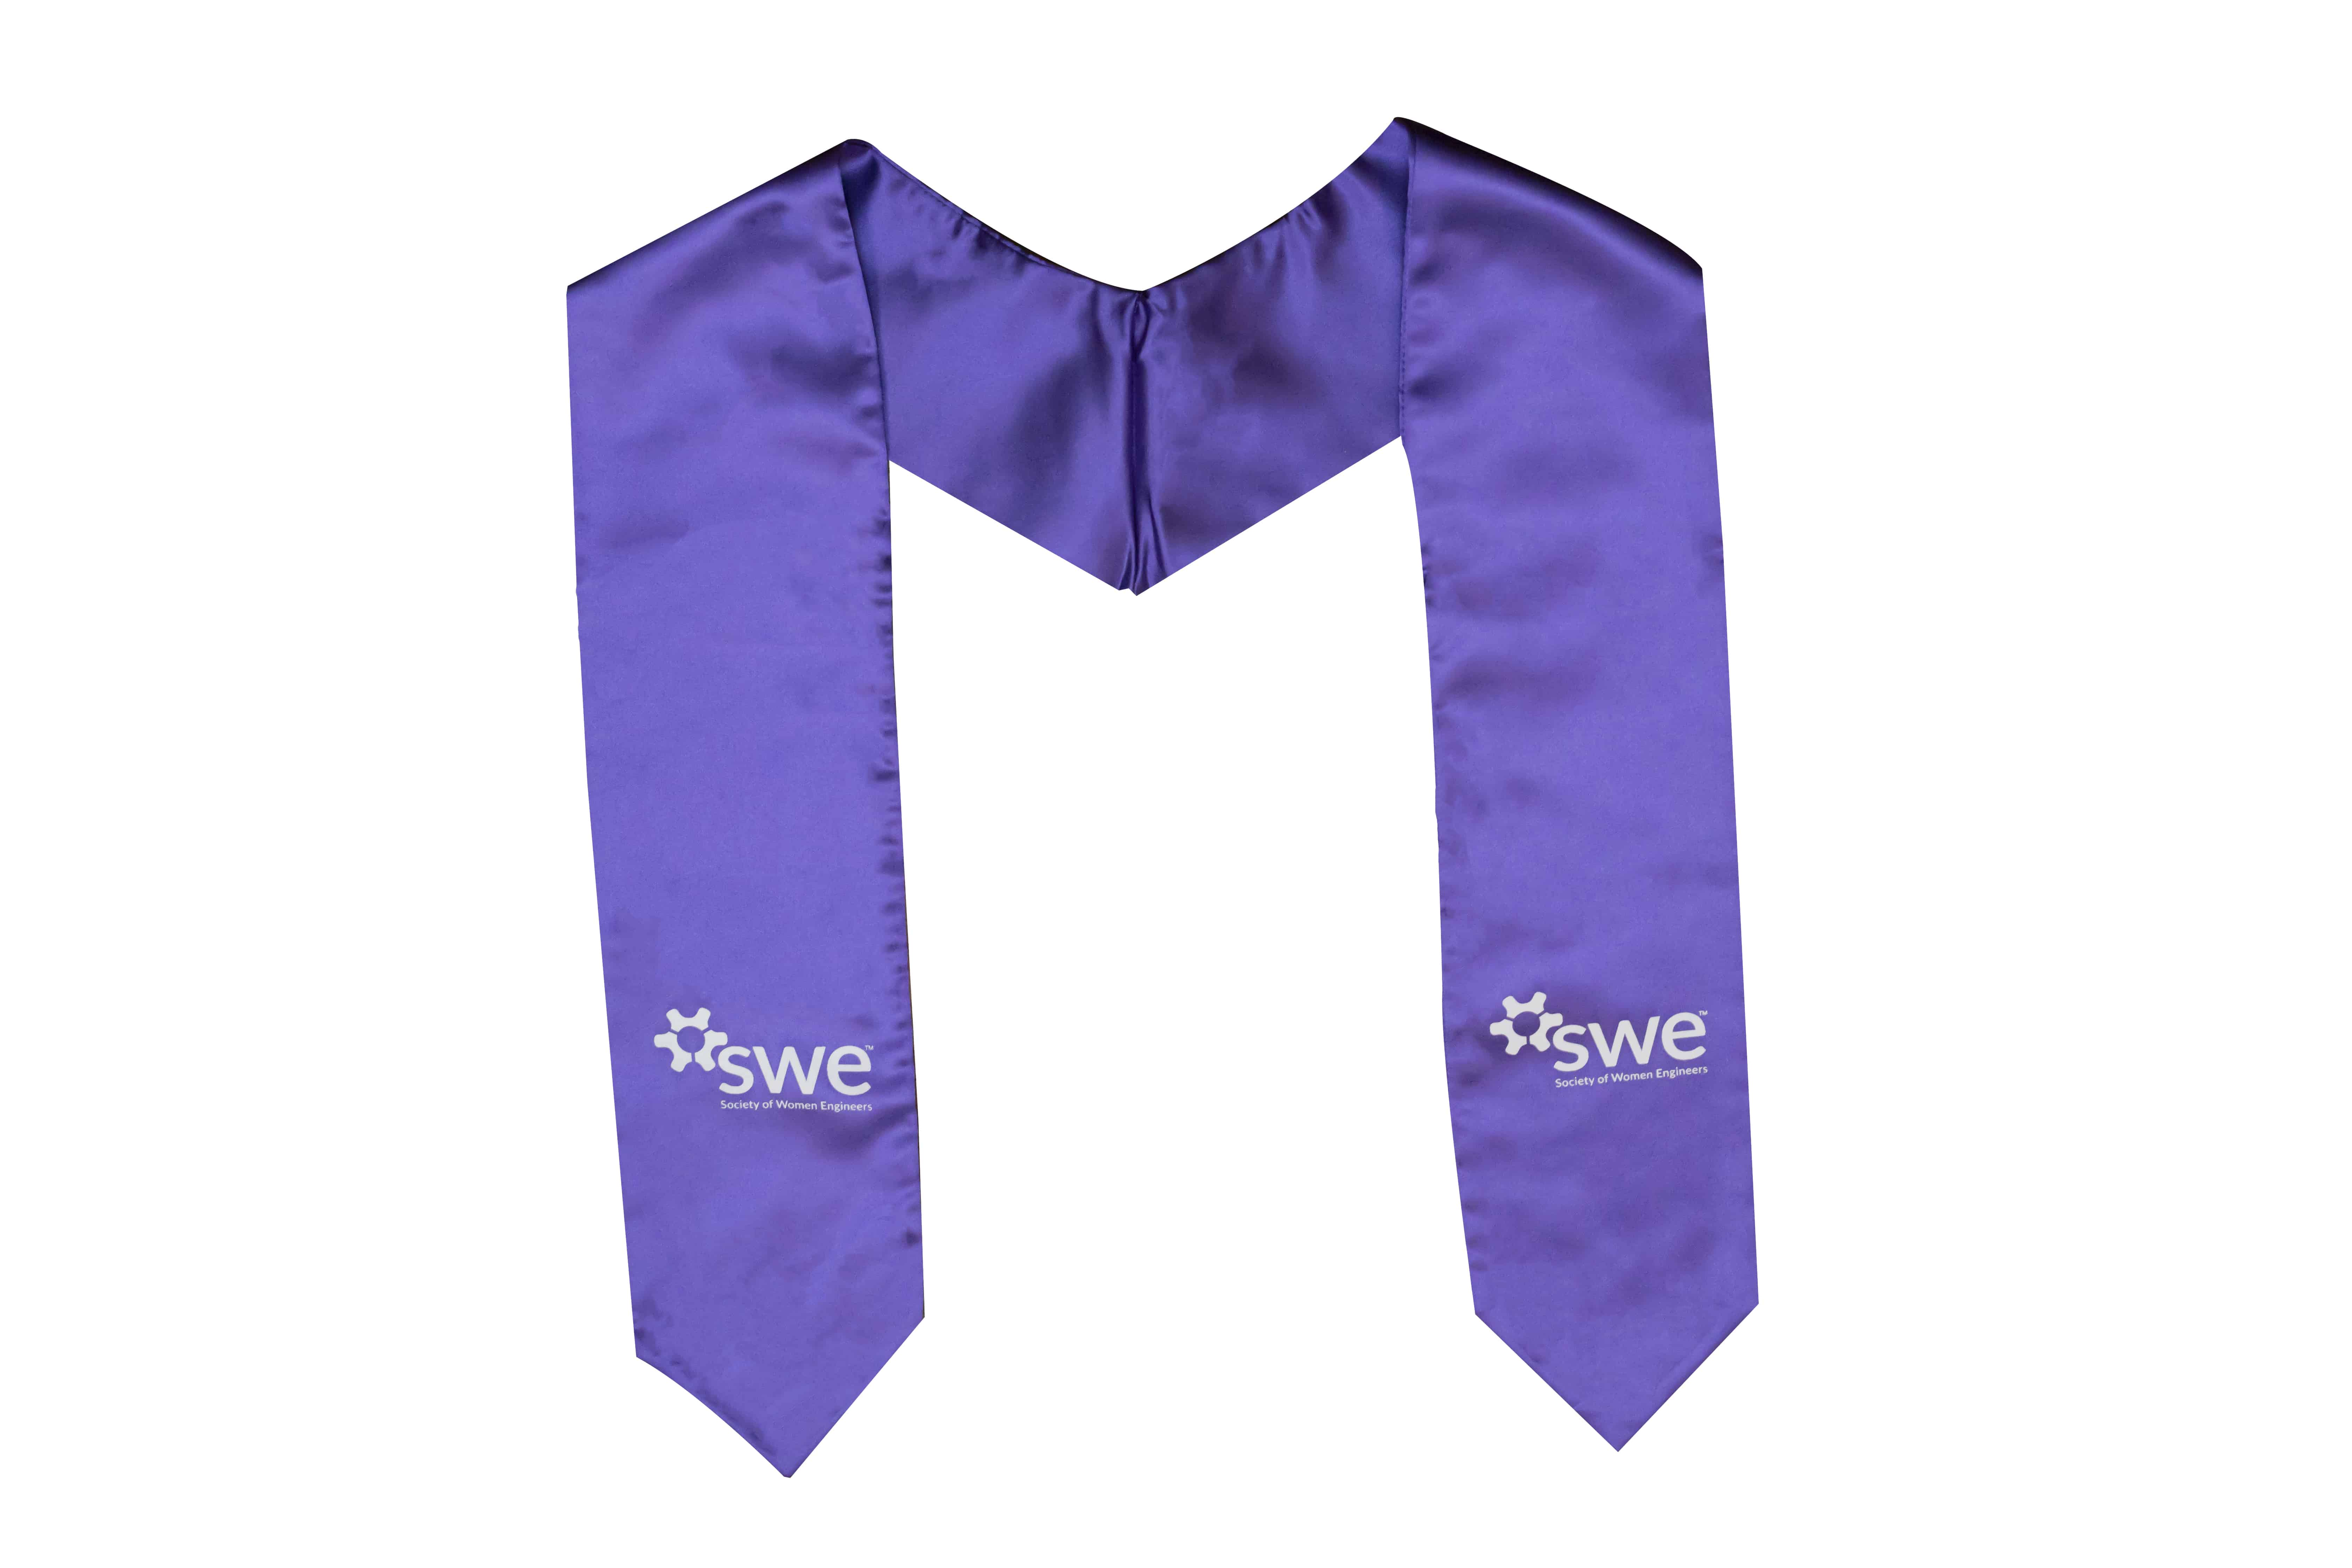 swe purple stole